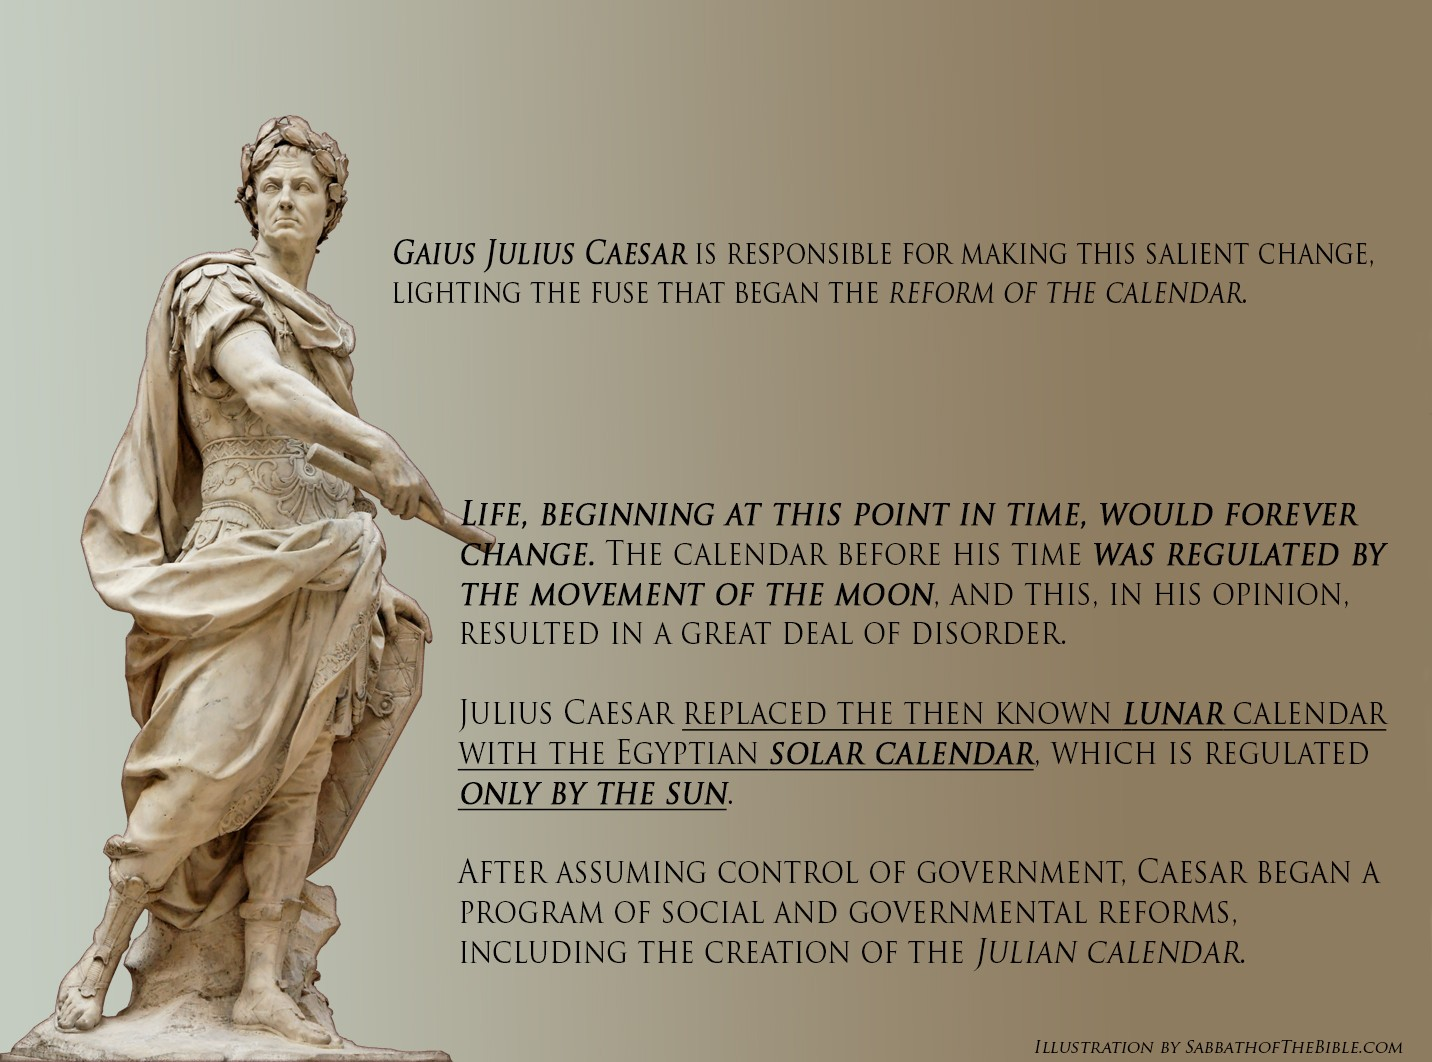 Julius Caesar replaced the then known lunar calendar with the Egyptian solar calendar, which is regulated only by the sun.